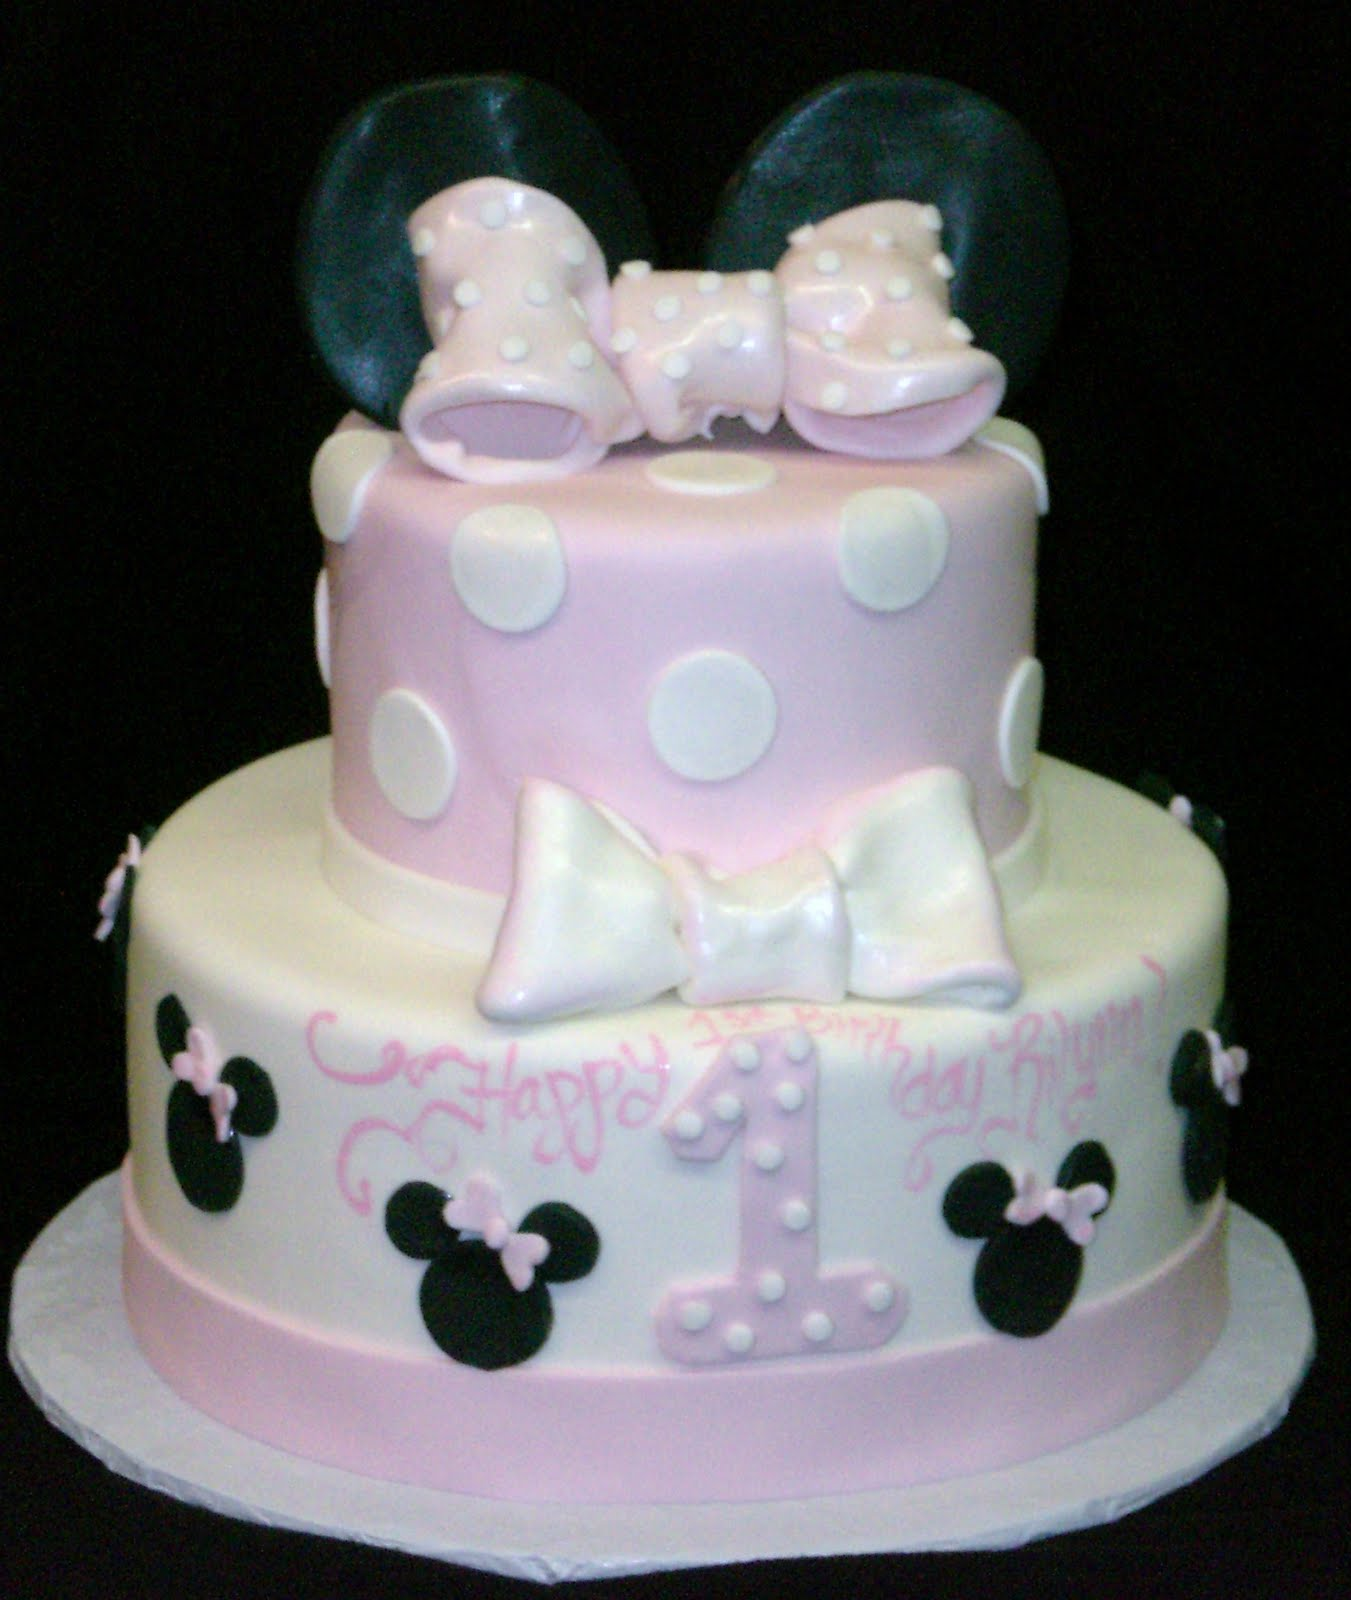 The Crimson Cake Blog Baby Pink Minnie Mouse Cake with Smash